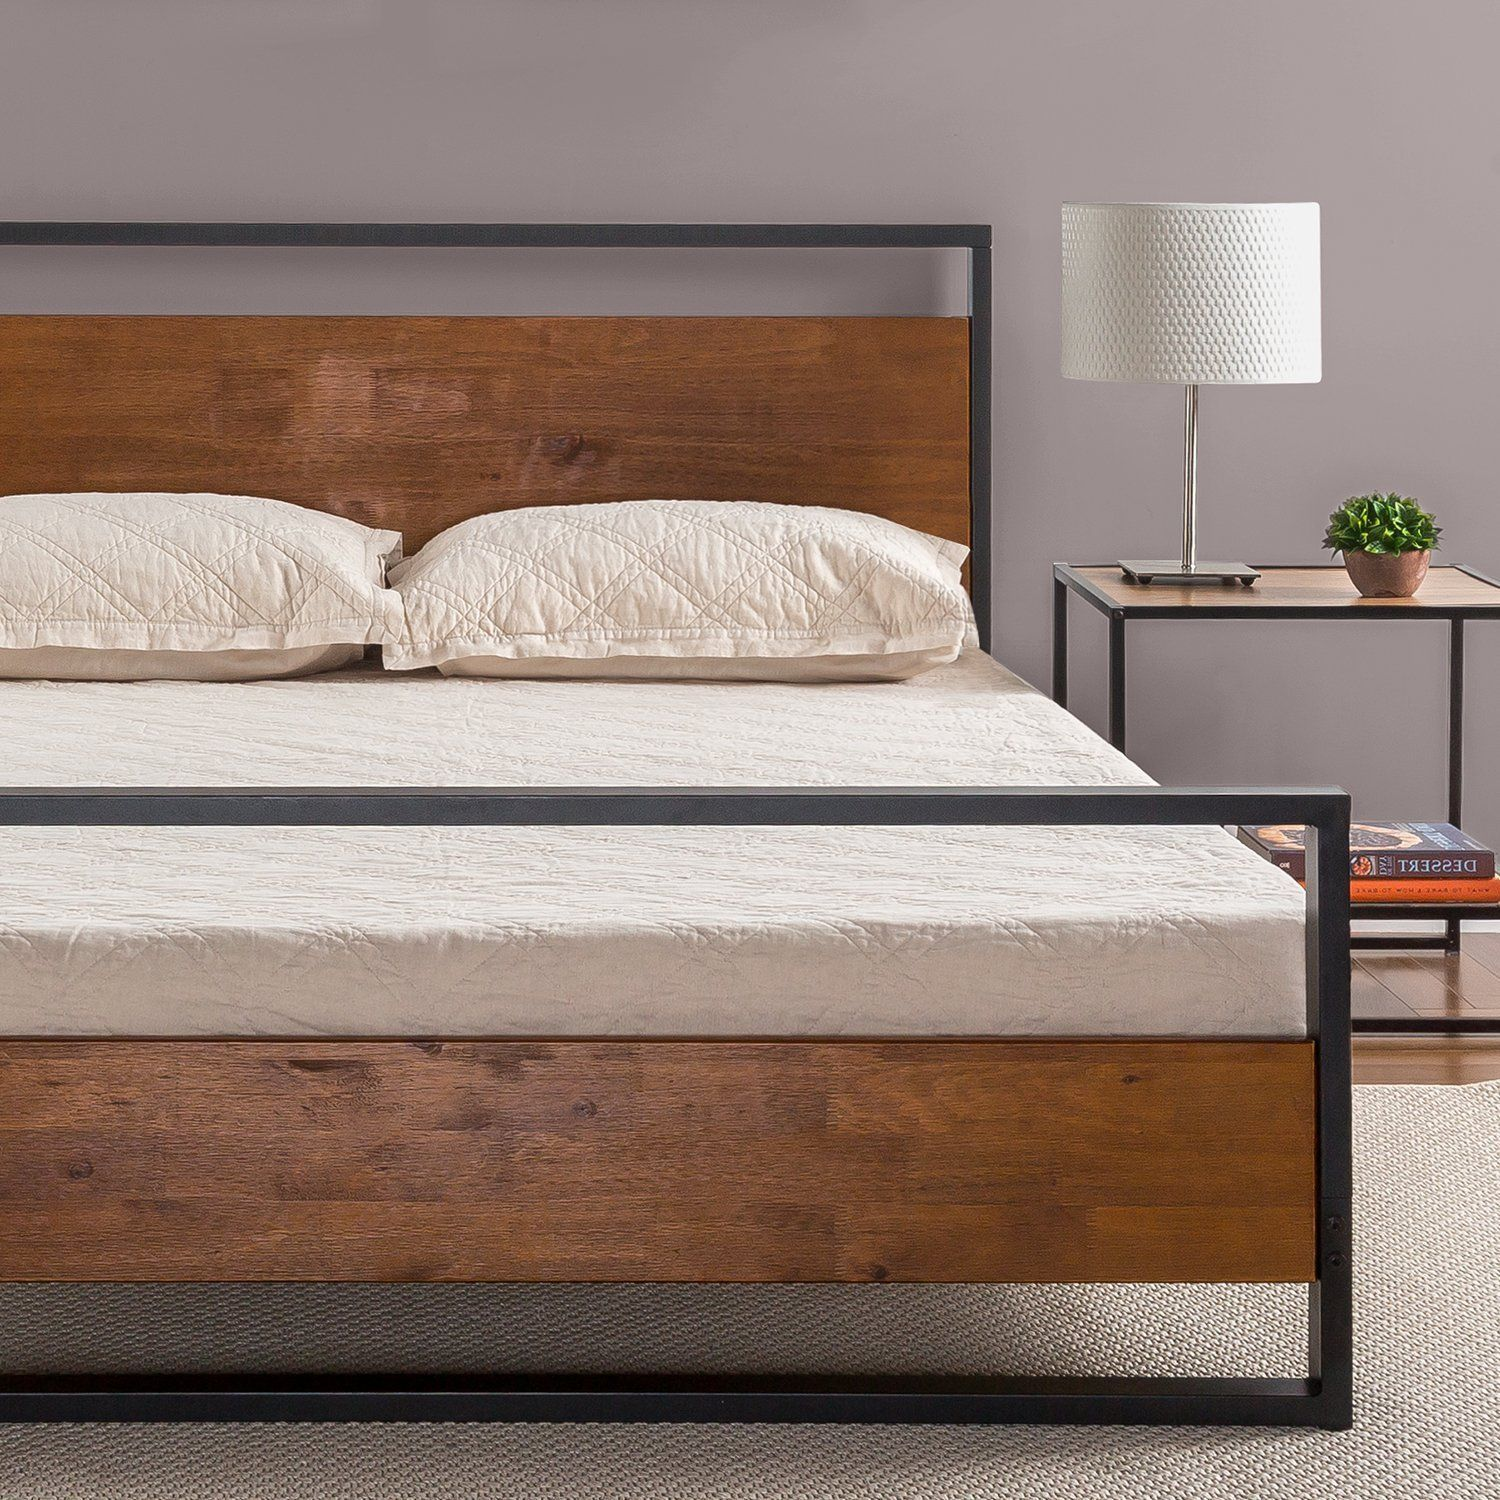 Bed Frames Bed Frames Wooden Iron Cute Rustic Farmhouse Modern Everyday 2018 Home Decor Platform Bed Frame Wood Platform Bed Headboards For Beds